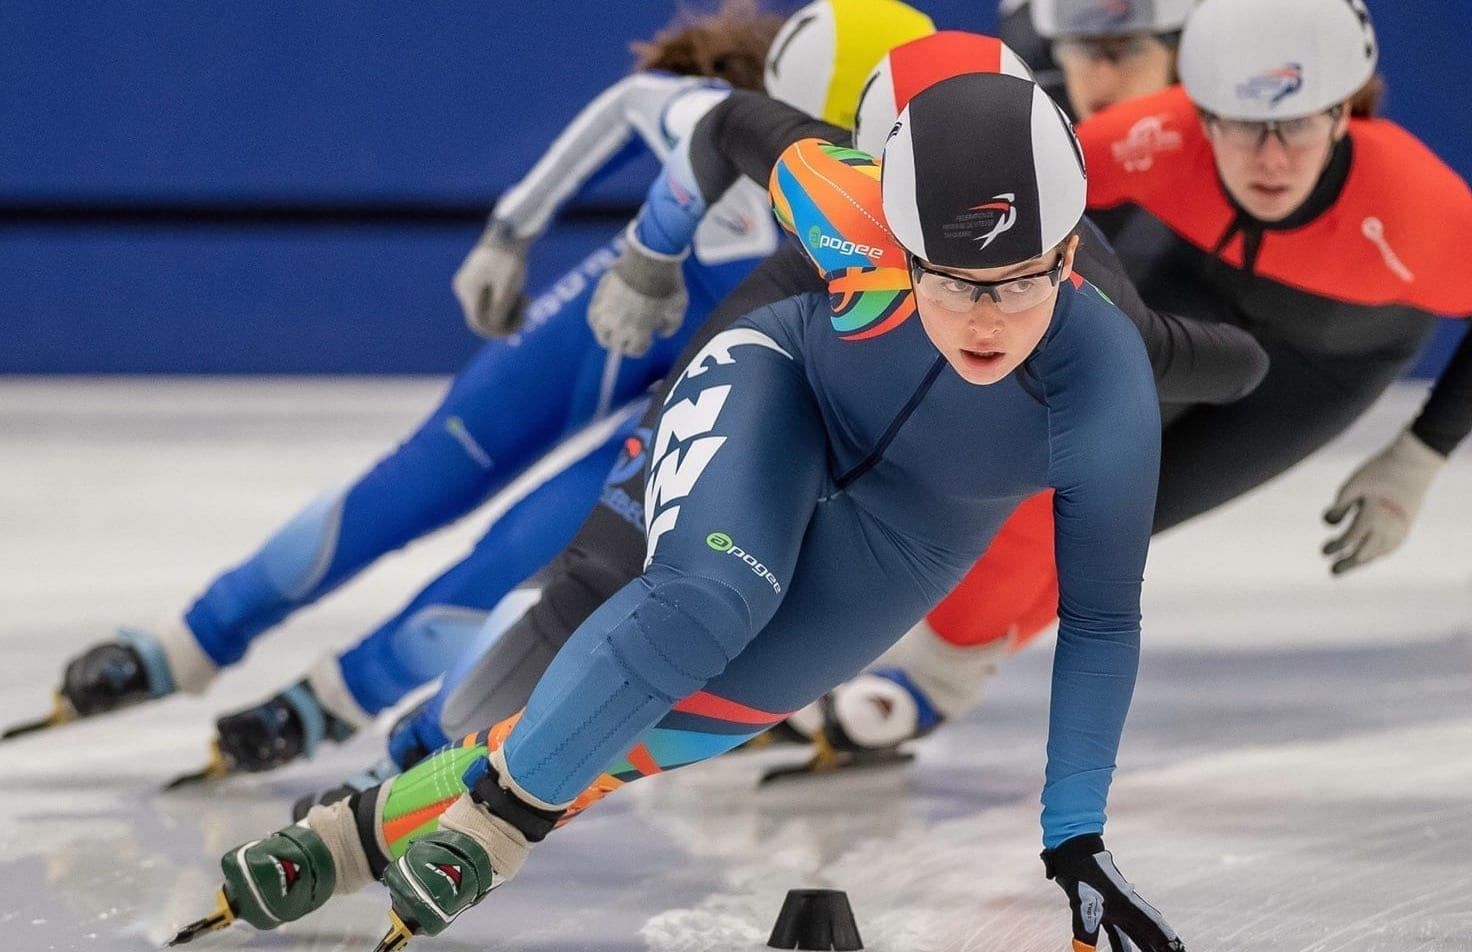 Wren Acorn leads the pack coming out of a turn during action in the Canada Cup Short Track 2 event in Sherbrooke, Que., this past weekend. Acorn finished seventh overall and advanced to compete at the Canada Cup Final in Calgary next month. Yves Longpre photo